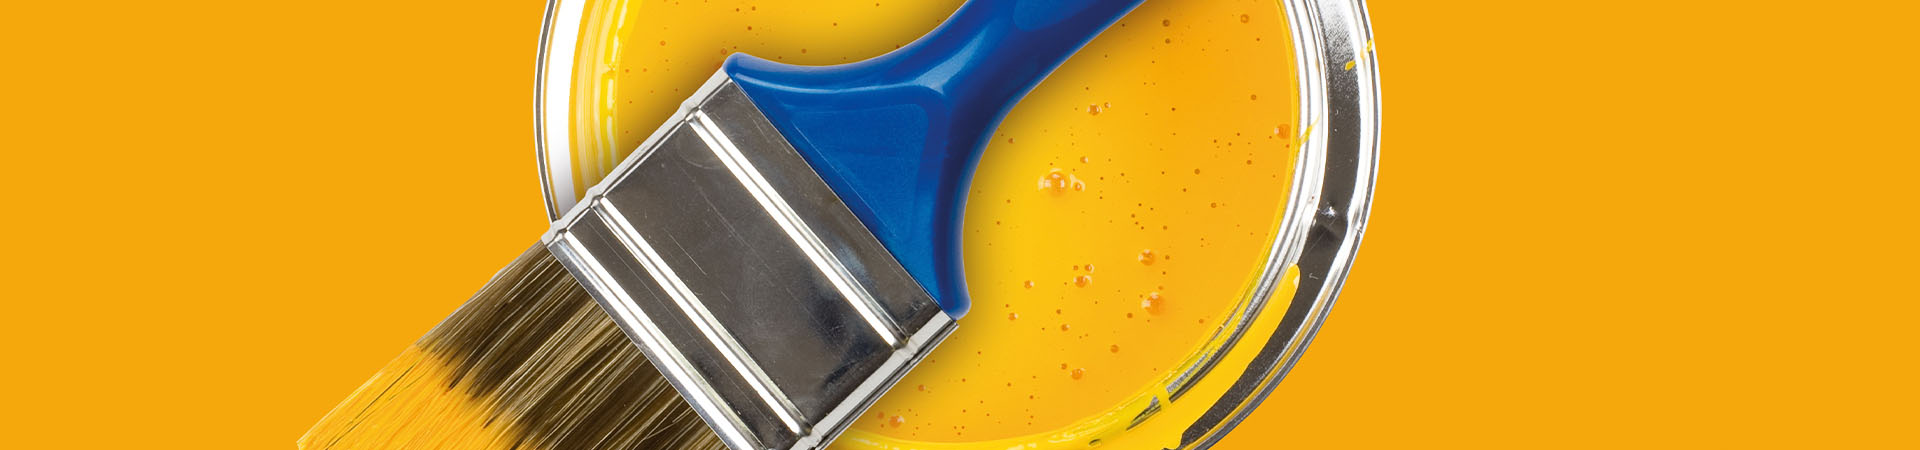 Bright yellow paint with blue paint brush